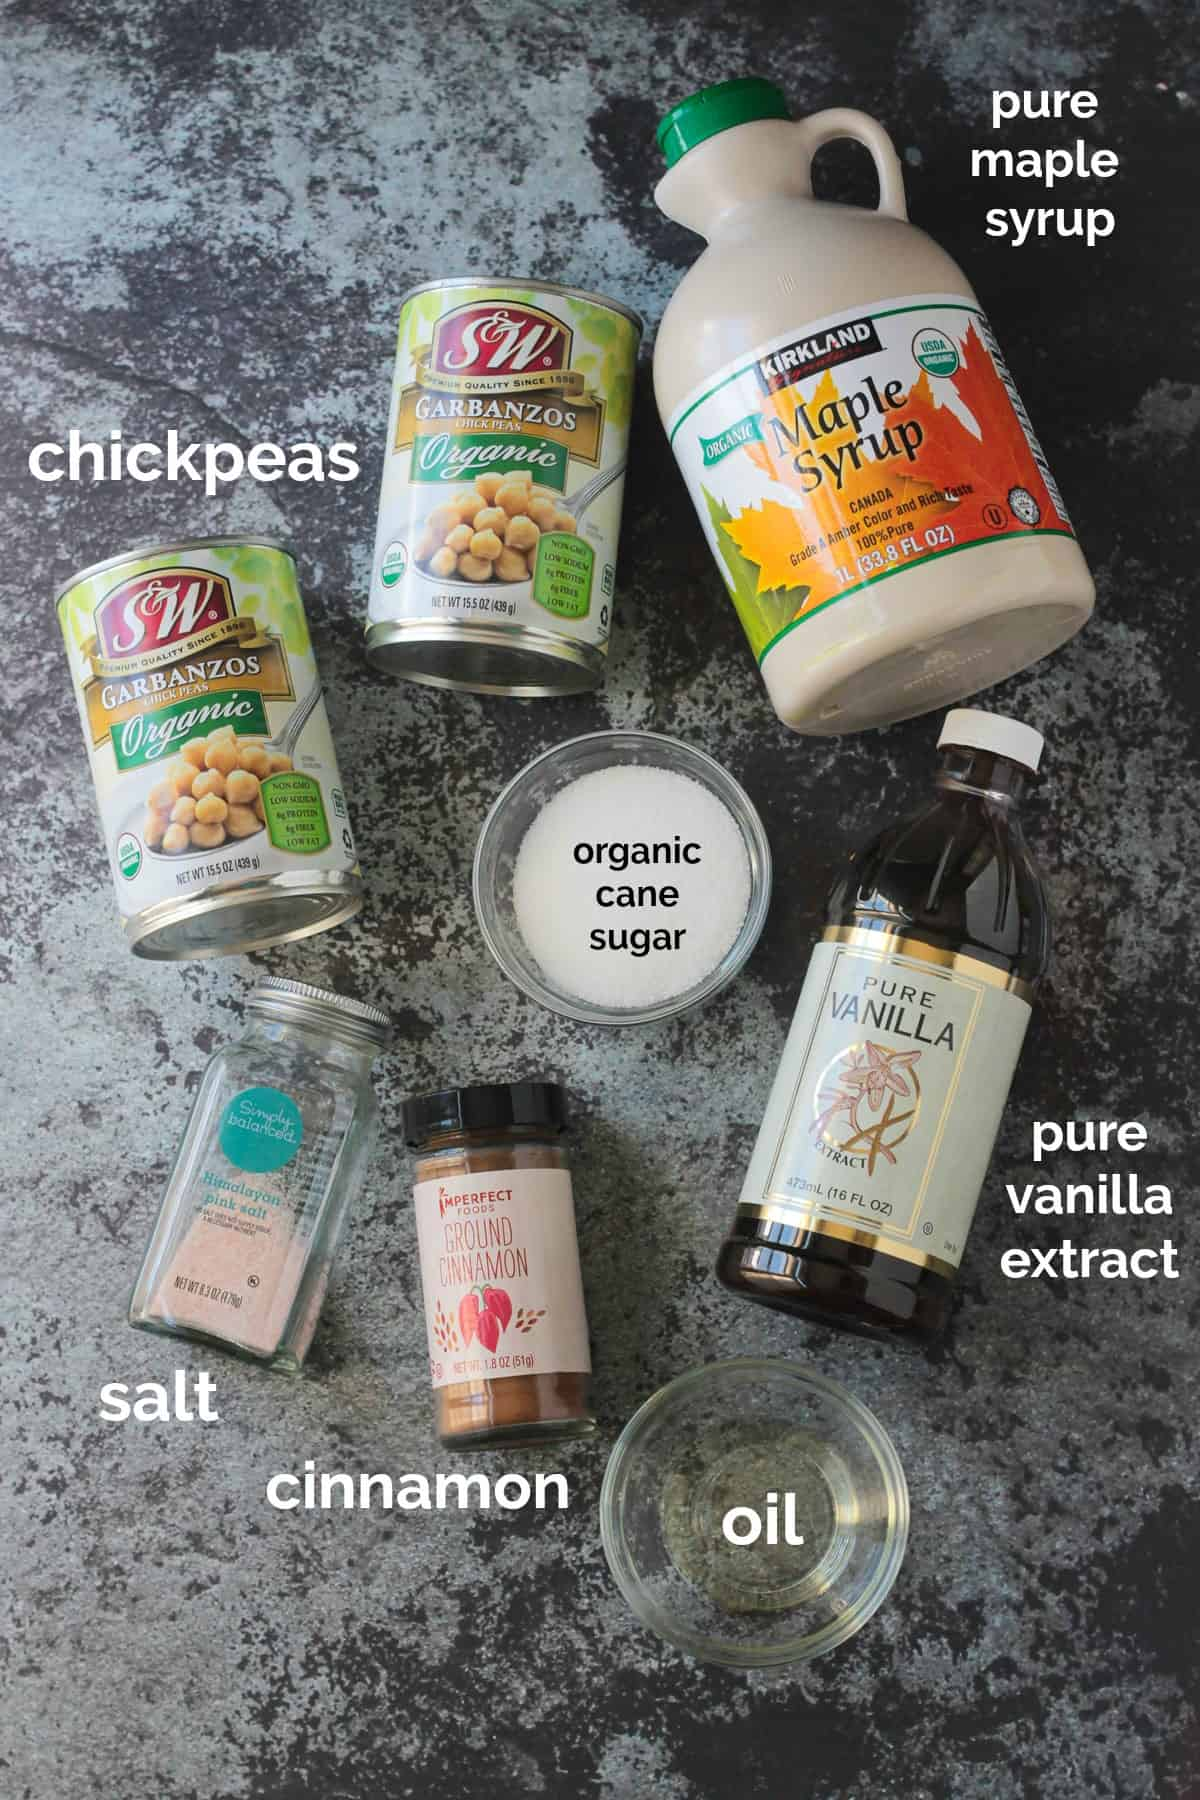 Recipe ingredients arrayed in individual bowls and containers.